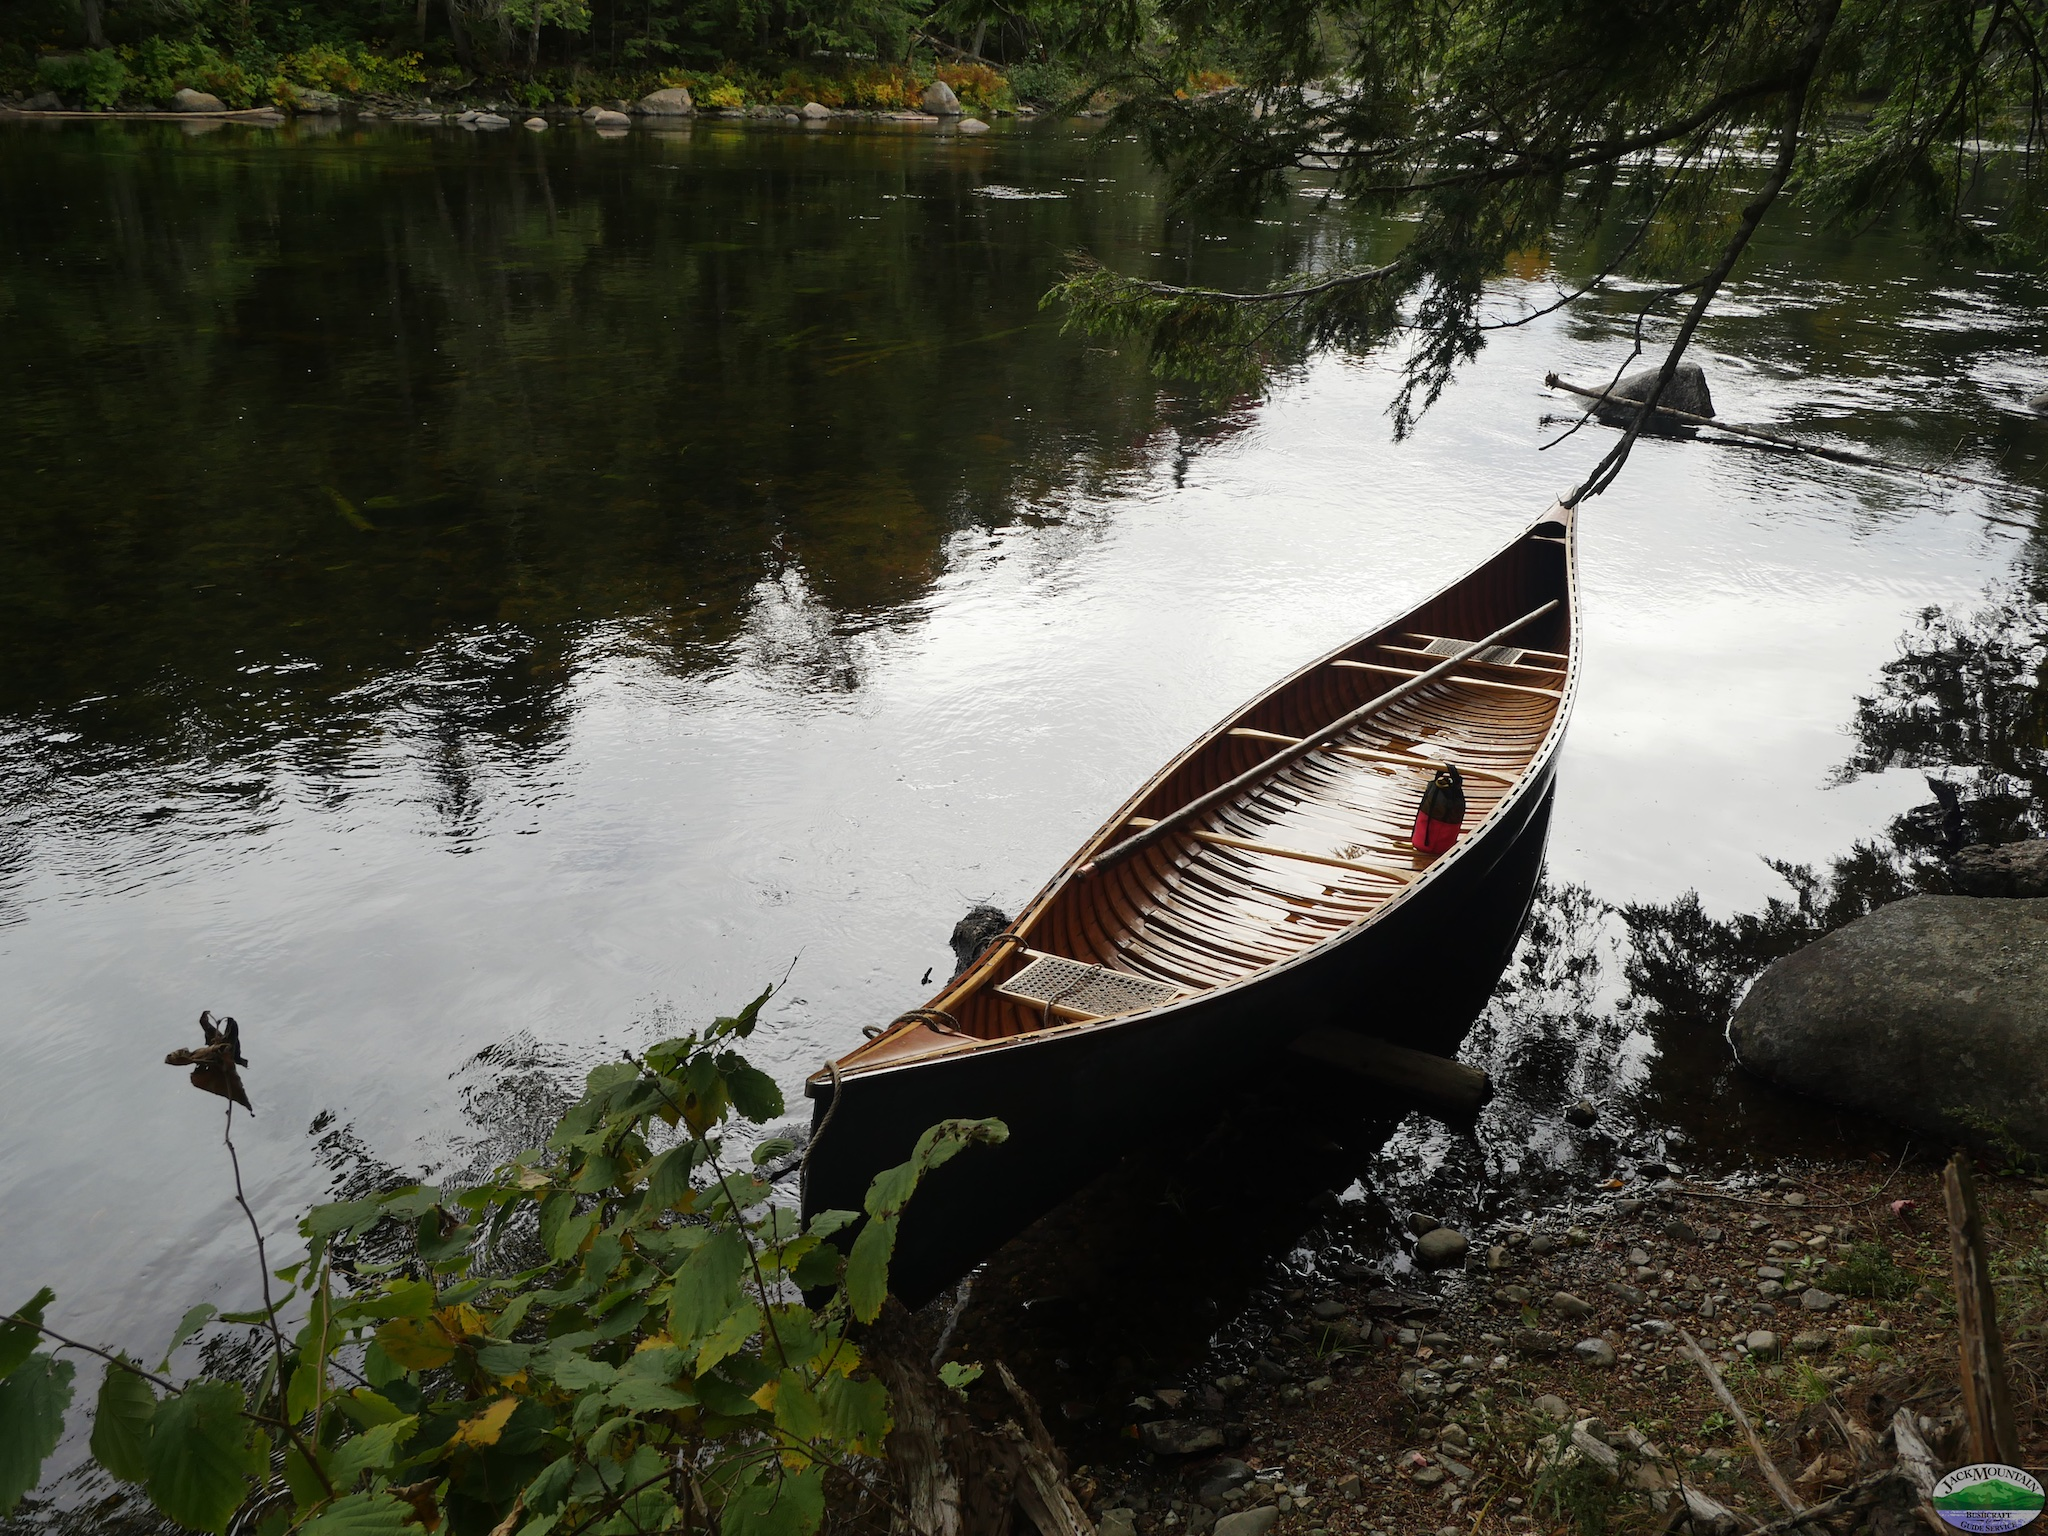 Canoe In The River post image